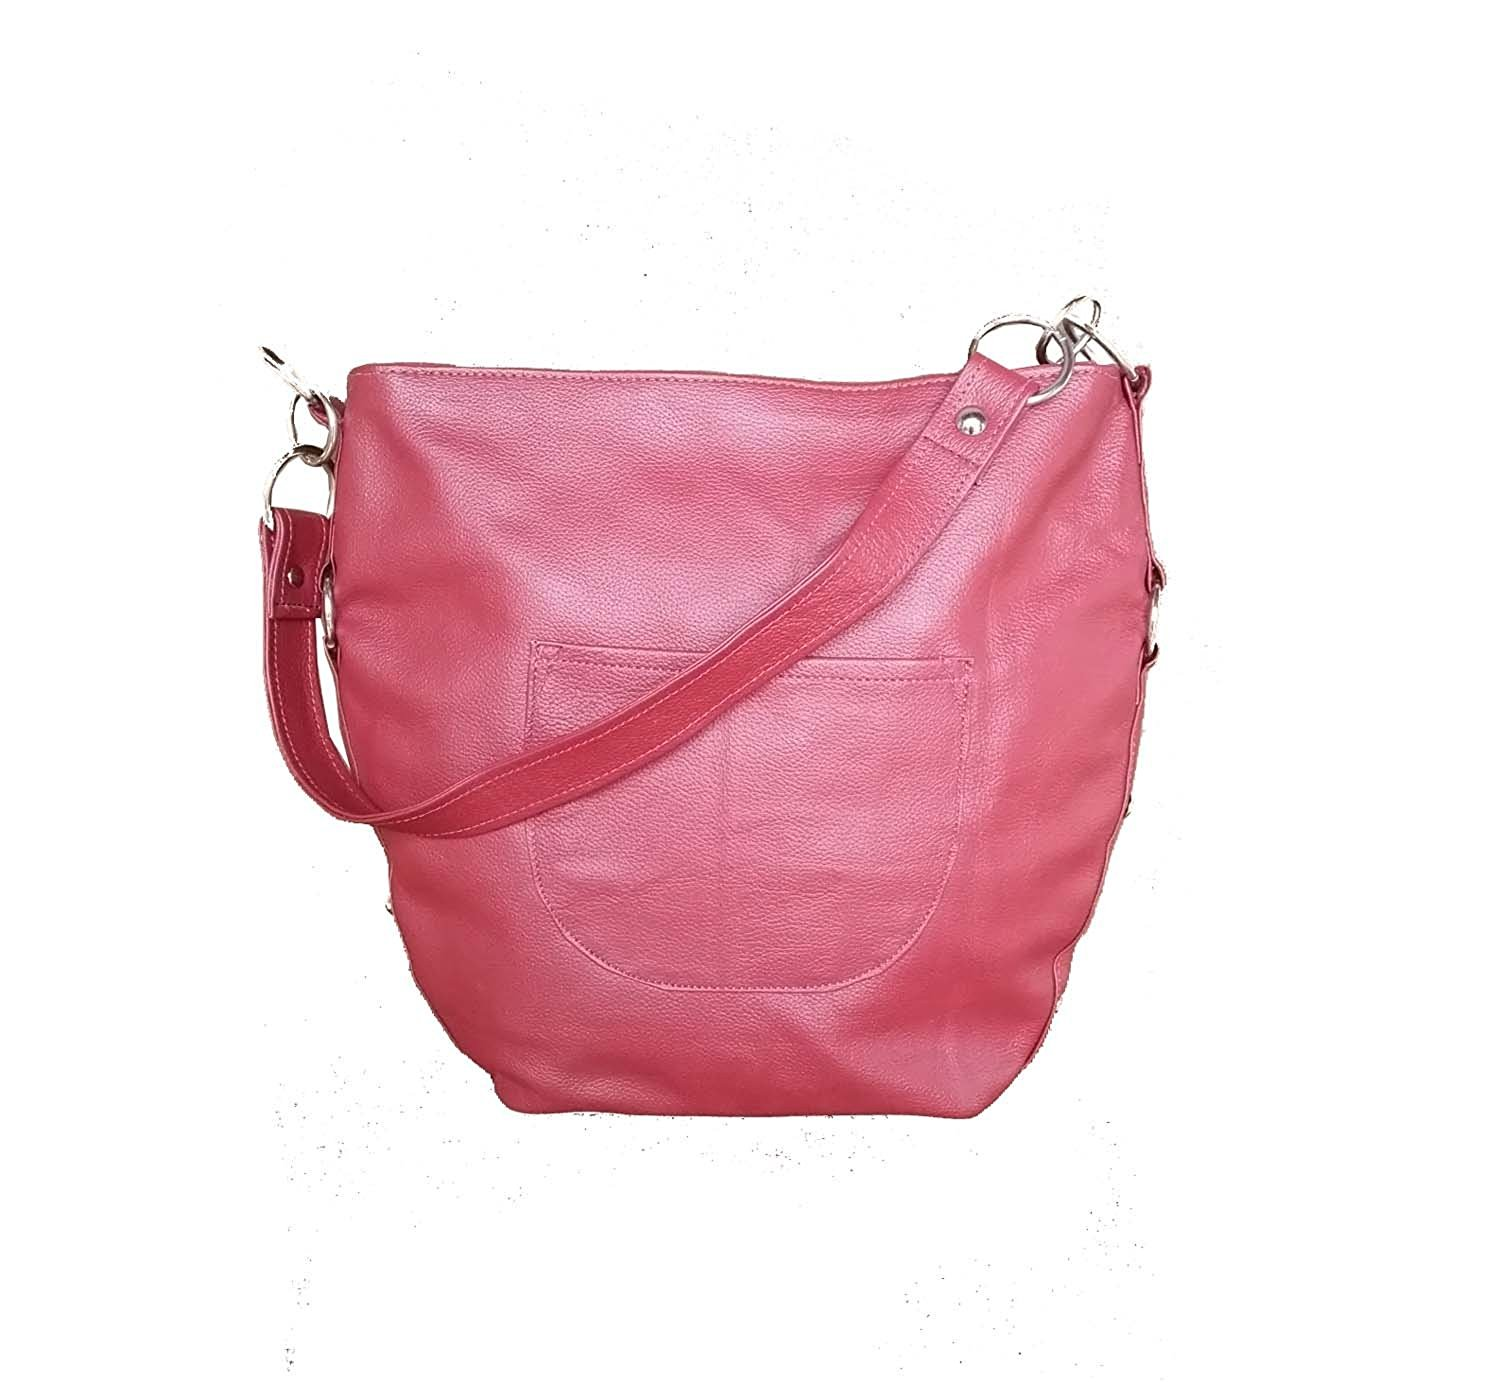 8c9a8aedbff2 Get Quotations · Fgalaze Hobo Leather Bag